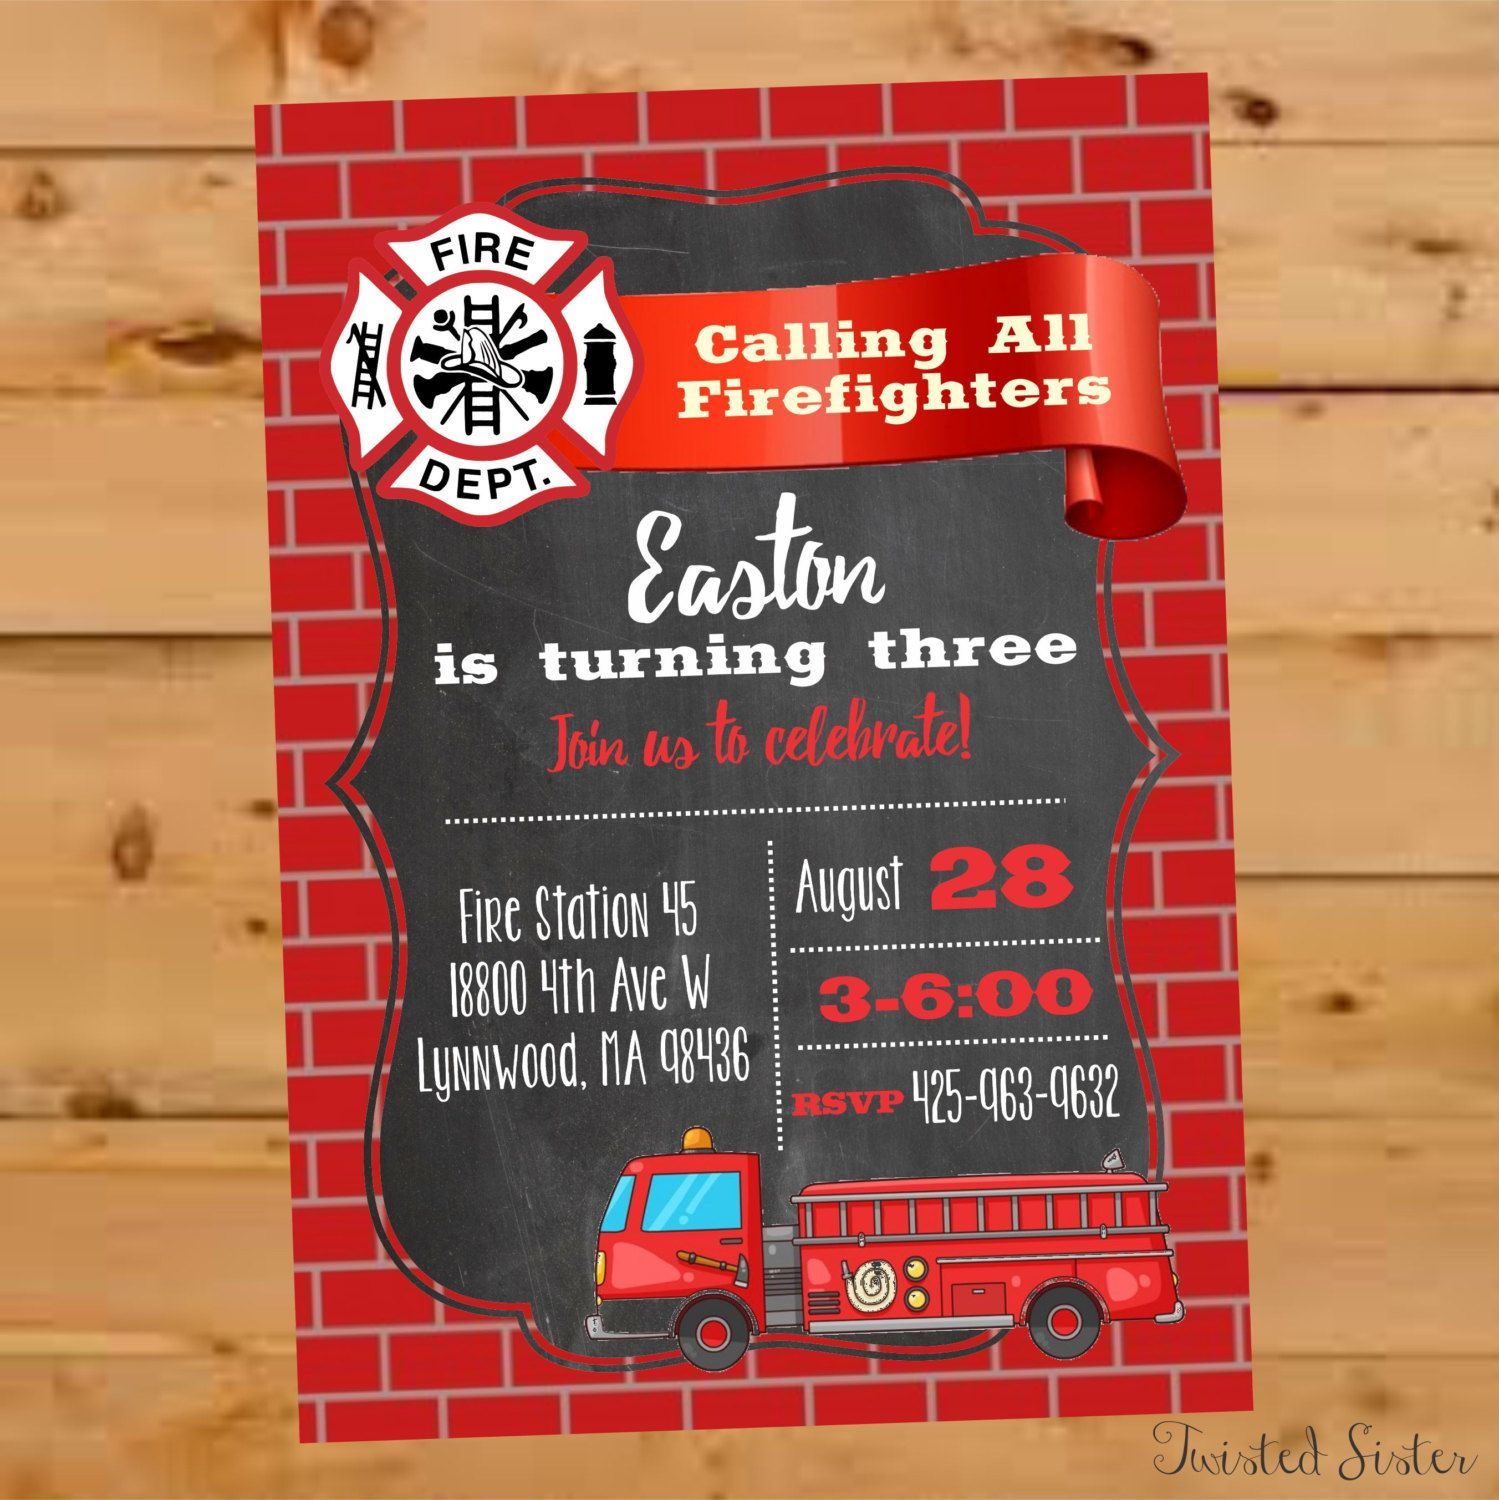 Firefighter birthday firetruck birthday invitation fireman firefighter birthday firetruck birthday invitation fireman invite fire station birthday party fire stopboris Image collections